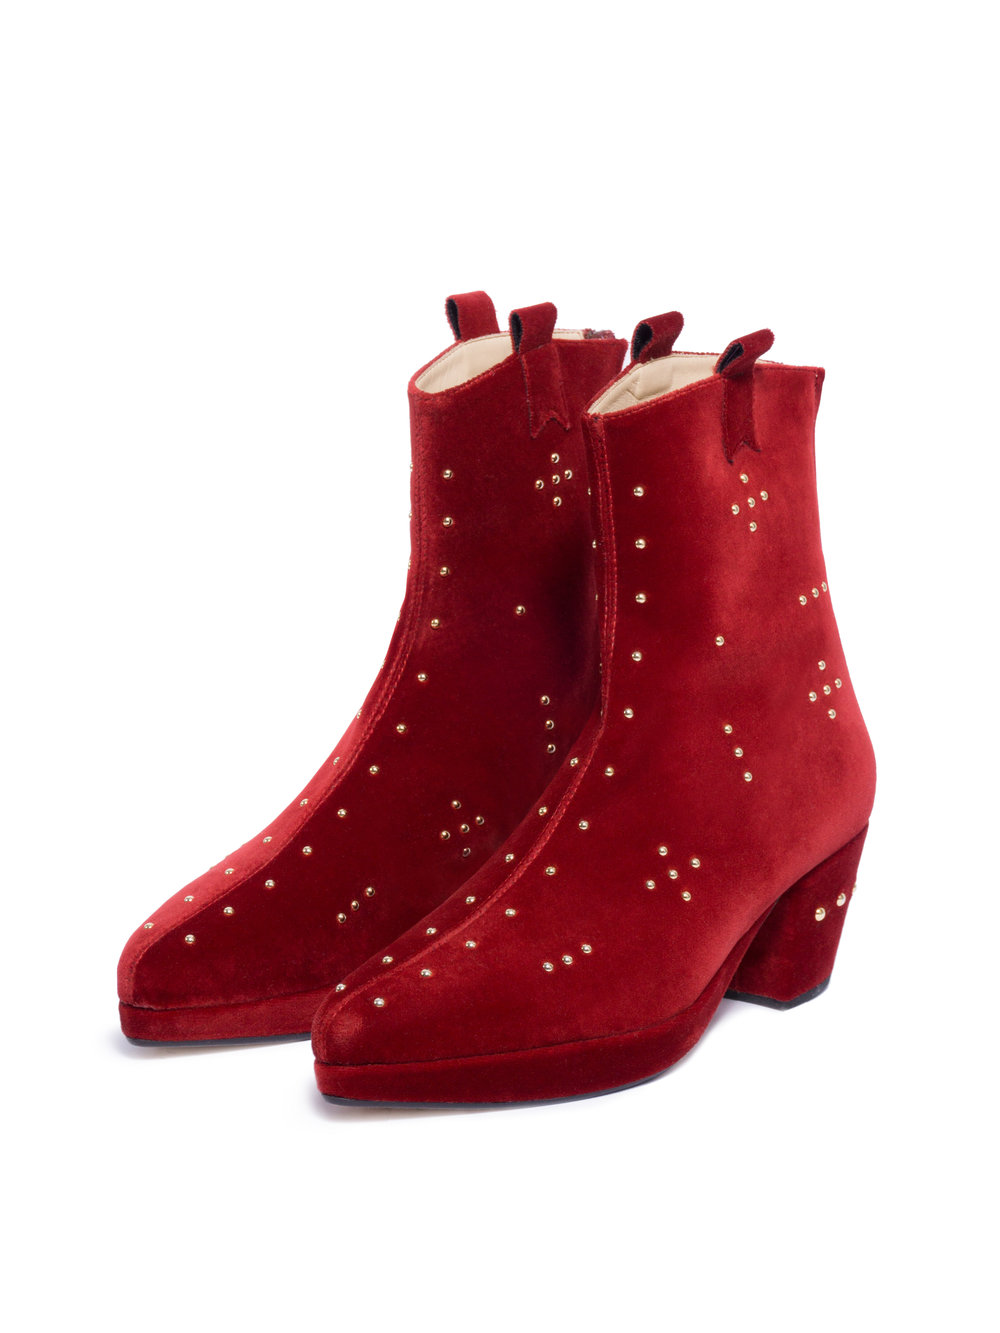 RANI BAGERIA X ENSOIE CROSS HIGH ANKLE BOOTS ROSSO   € 415.00